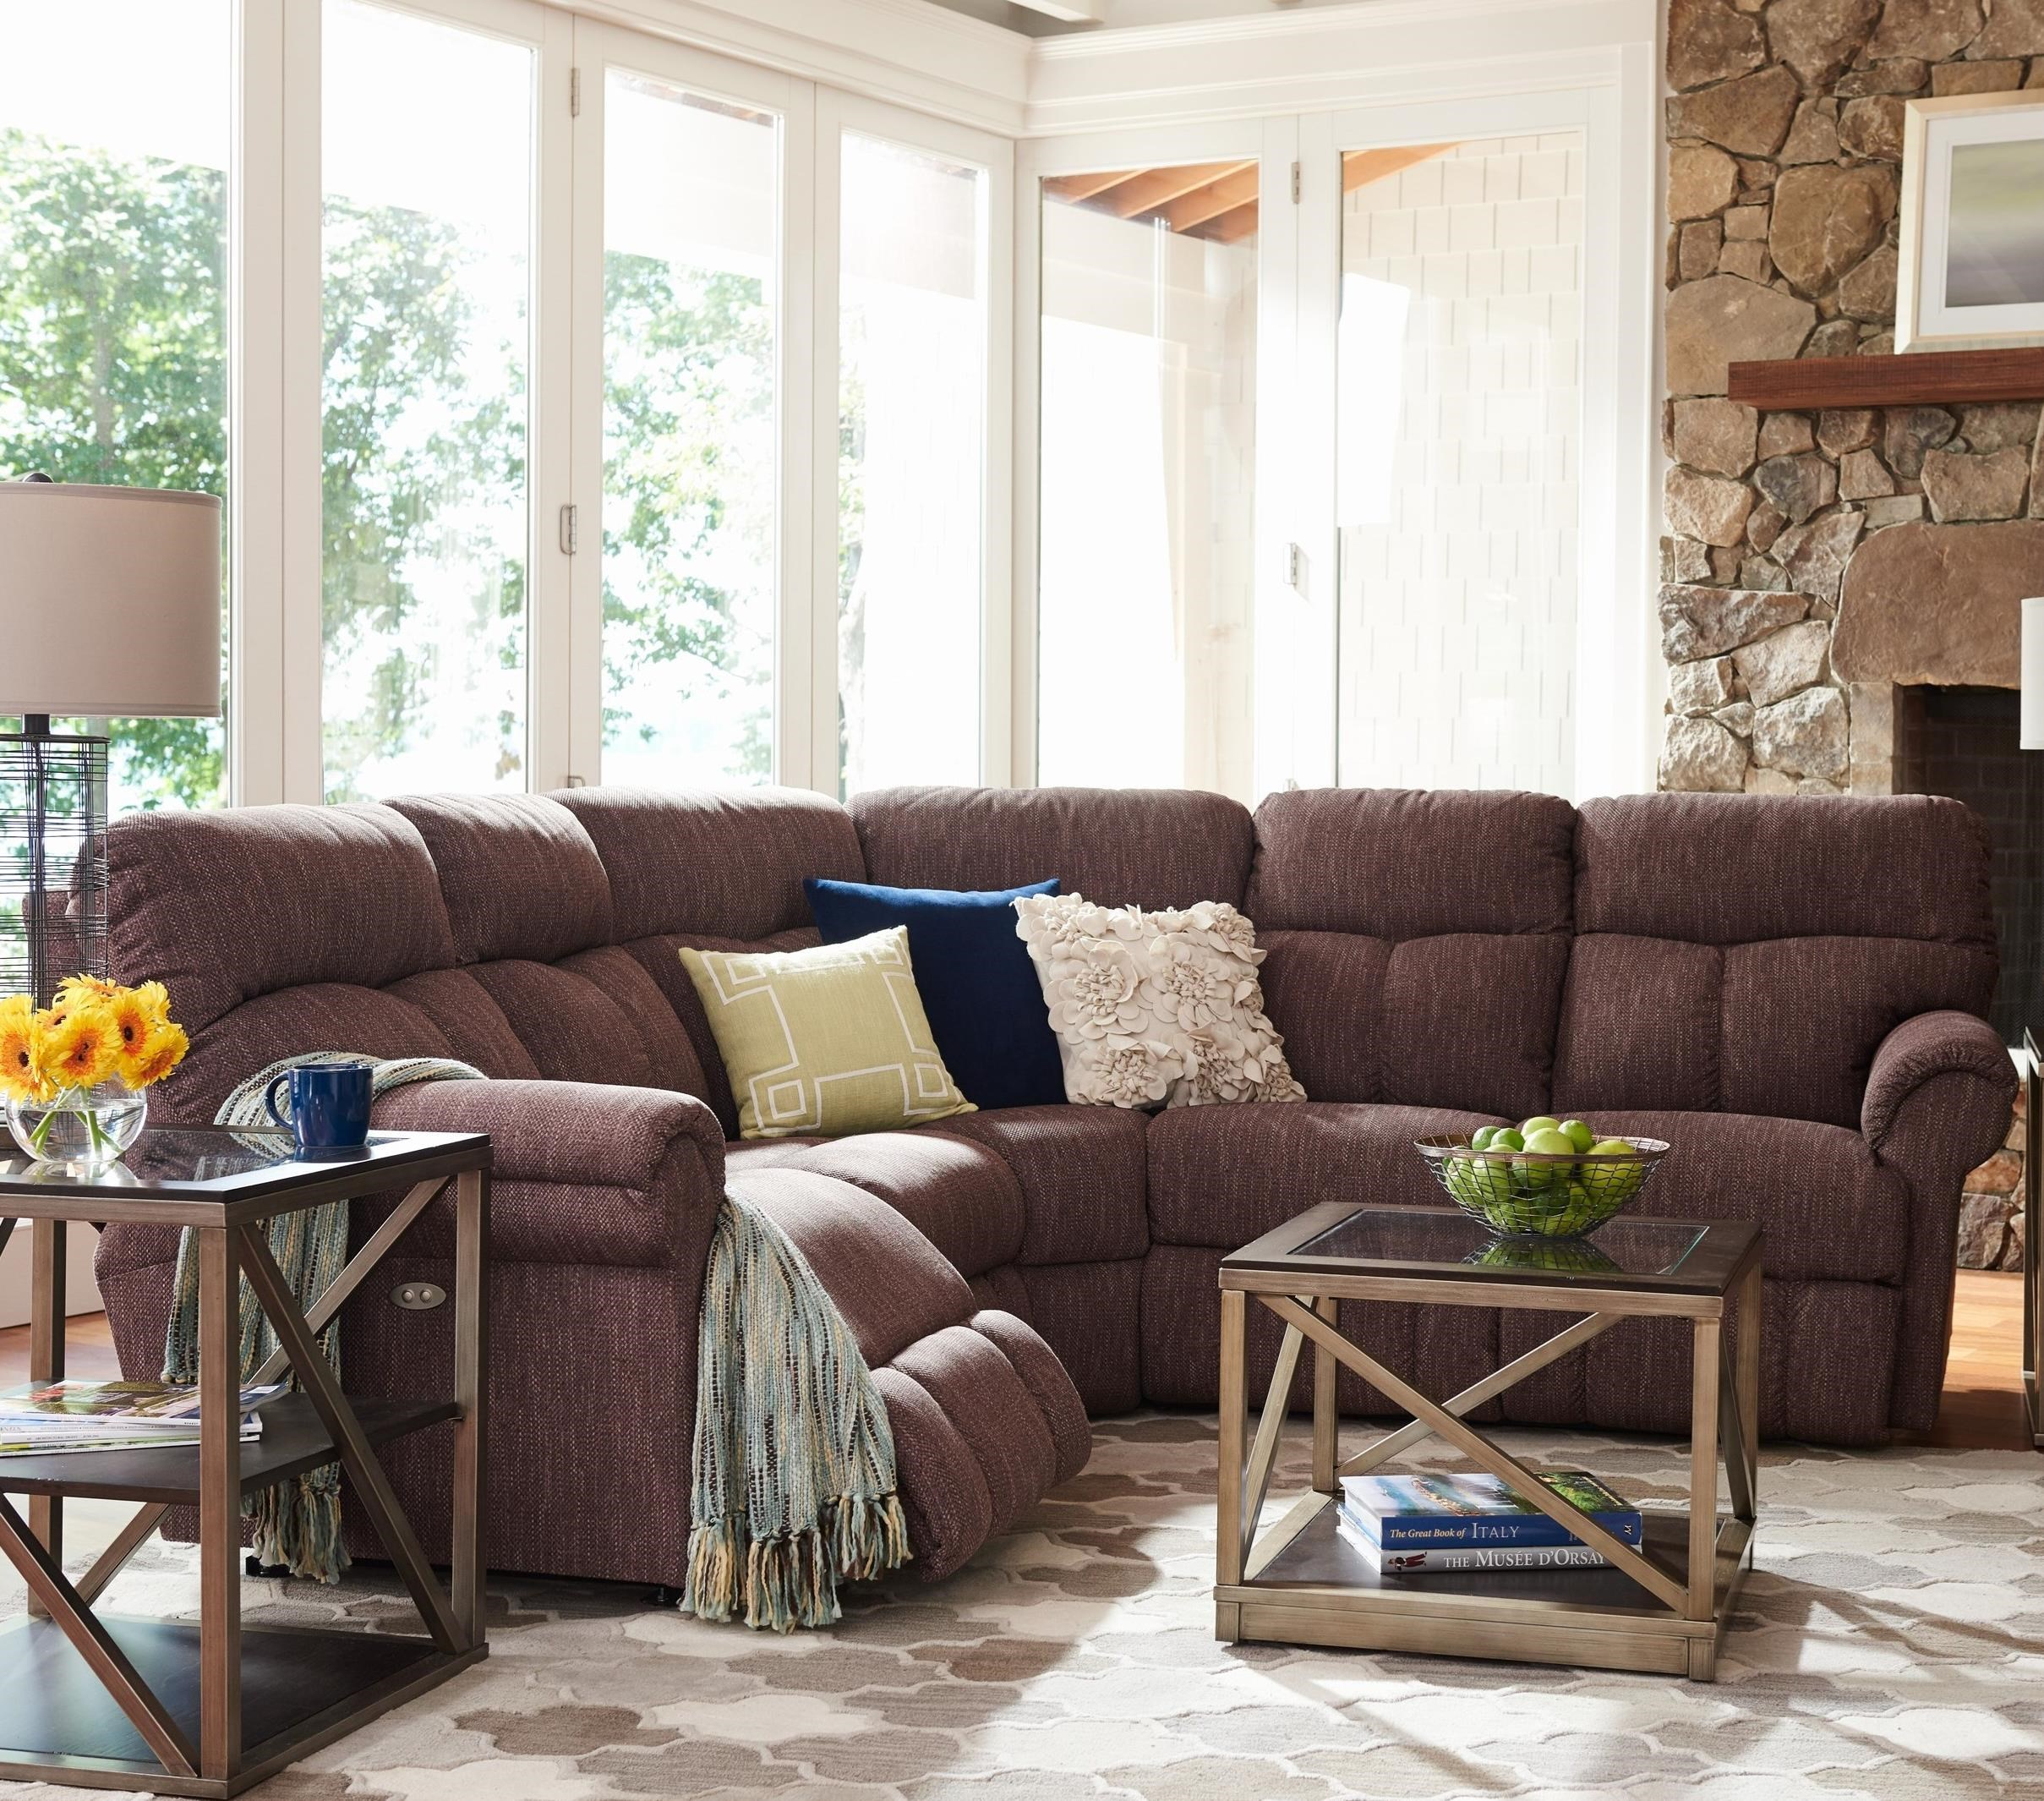 La-Z-Boy Sheldon Casual Three Piece Power Reclining Sectional Sofa - Great American Home Store - Reclining Sectional Sofas  sc 1 st  Great American Home Store & La-Z-Boy Sheldon Casual Three Piece Power Reclining Sectional Sofa ... islam-shia.org